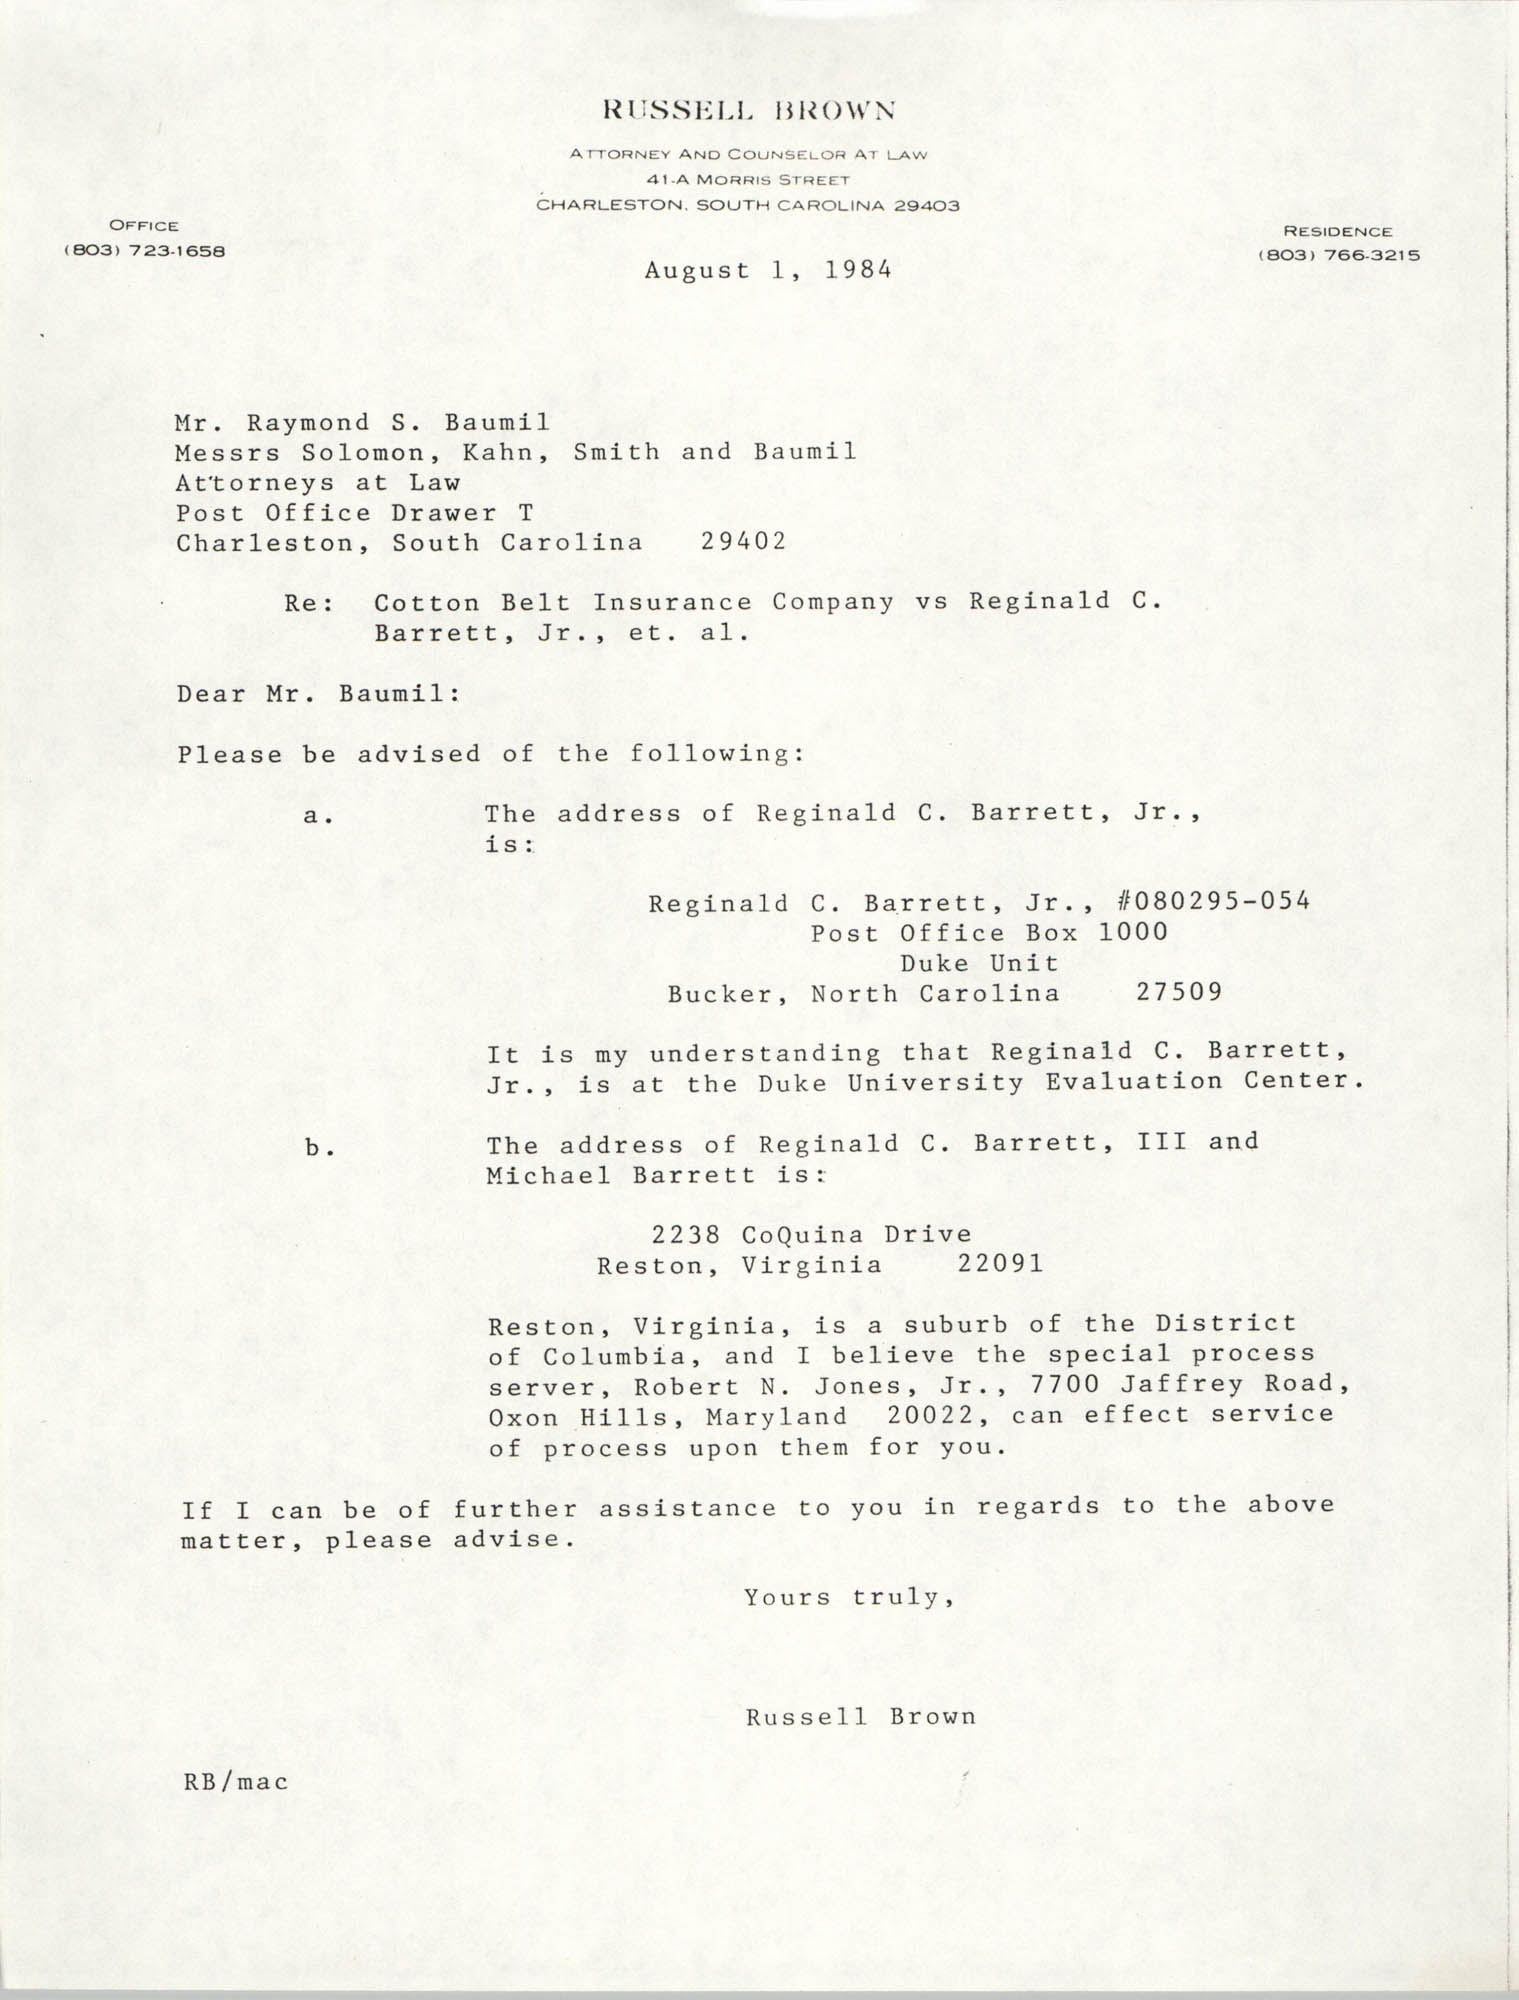 Letter from Russell Brown to Raymond S. Baumil, August 1, 1984